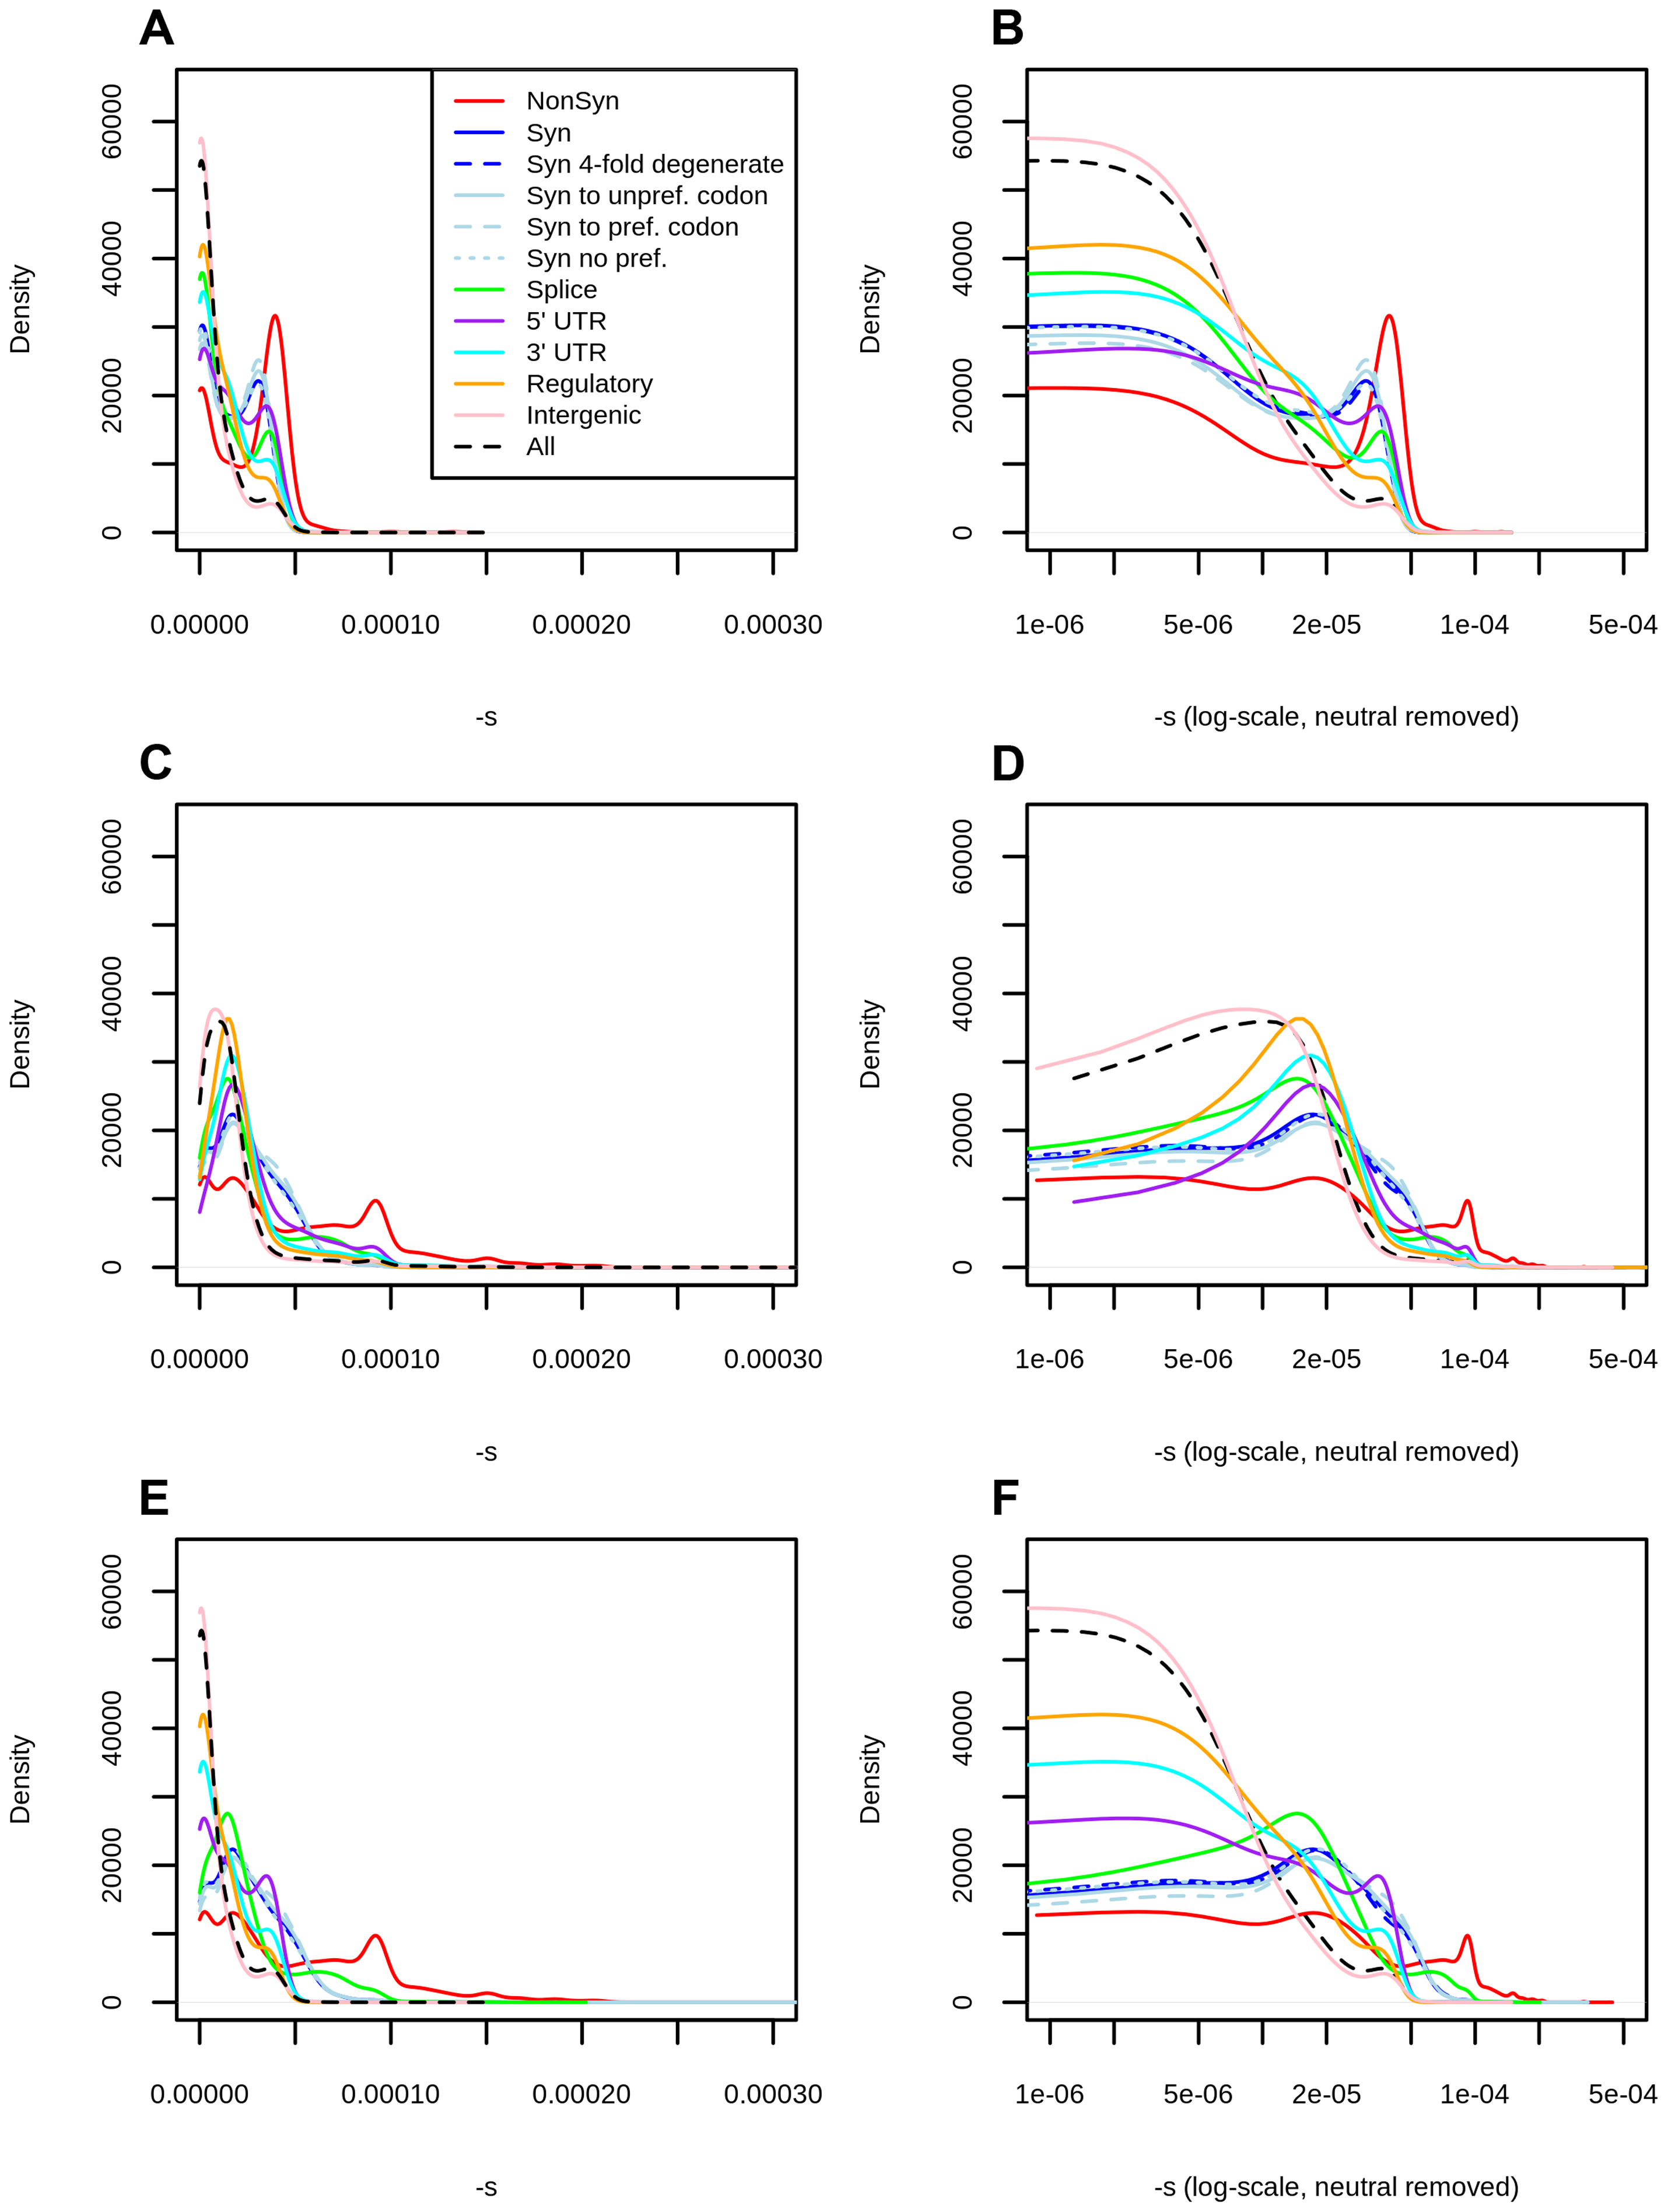 Distribution of fitness effects among YRI polymorphisms in the Complete Genomics dataset, partitioned by the genomic consequence of the mutated site.